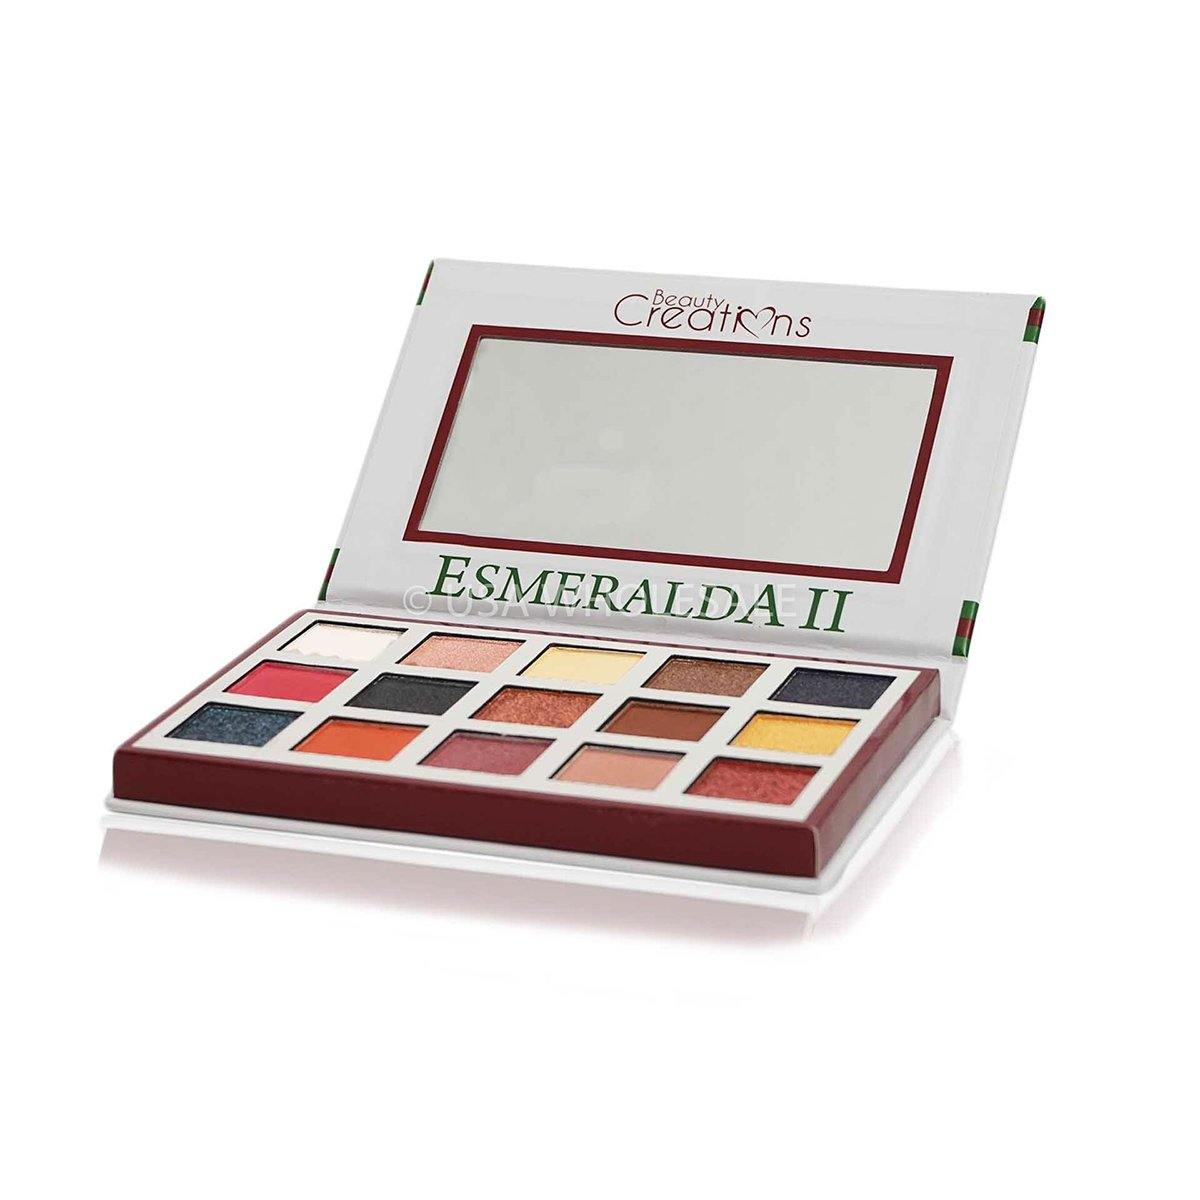 BEAUTY CREATIONS | Esmeralda Collection 2 Eyeshadow Palette (15 Colors X Case of 12)